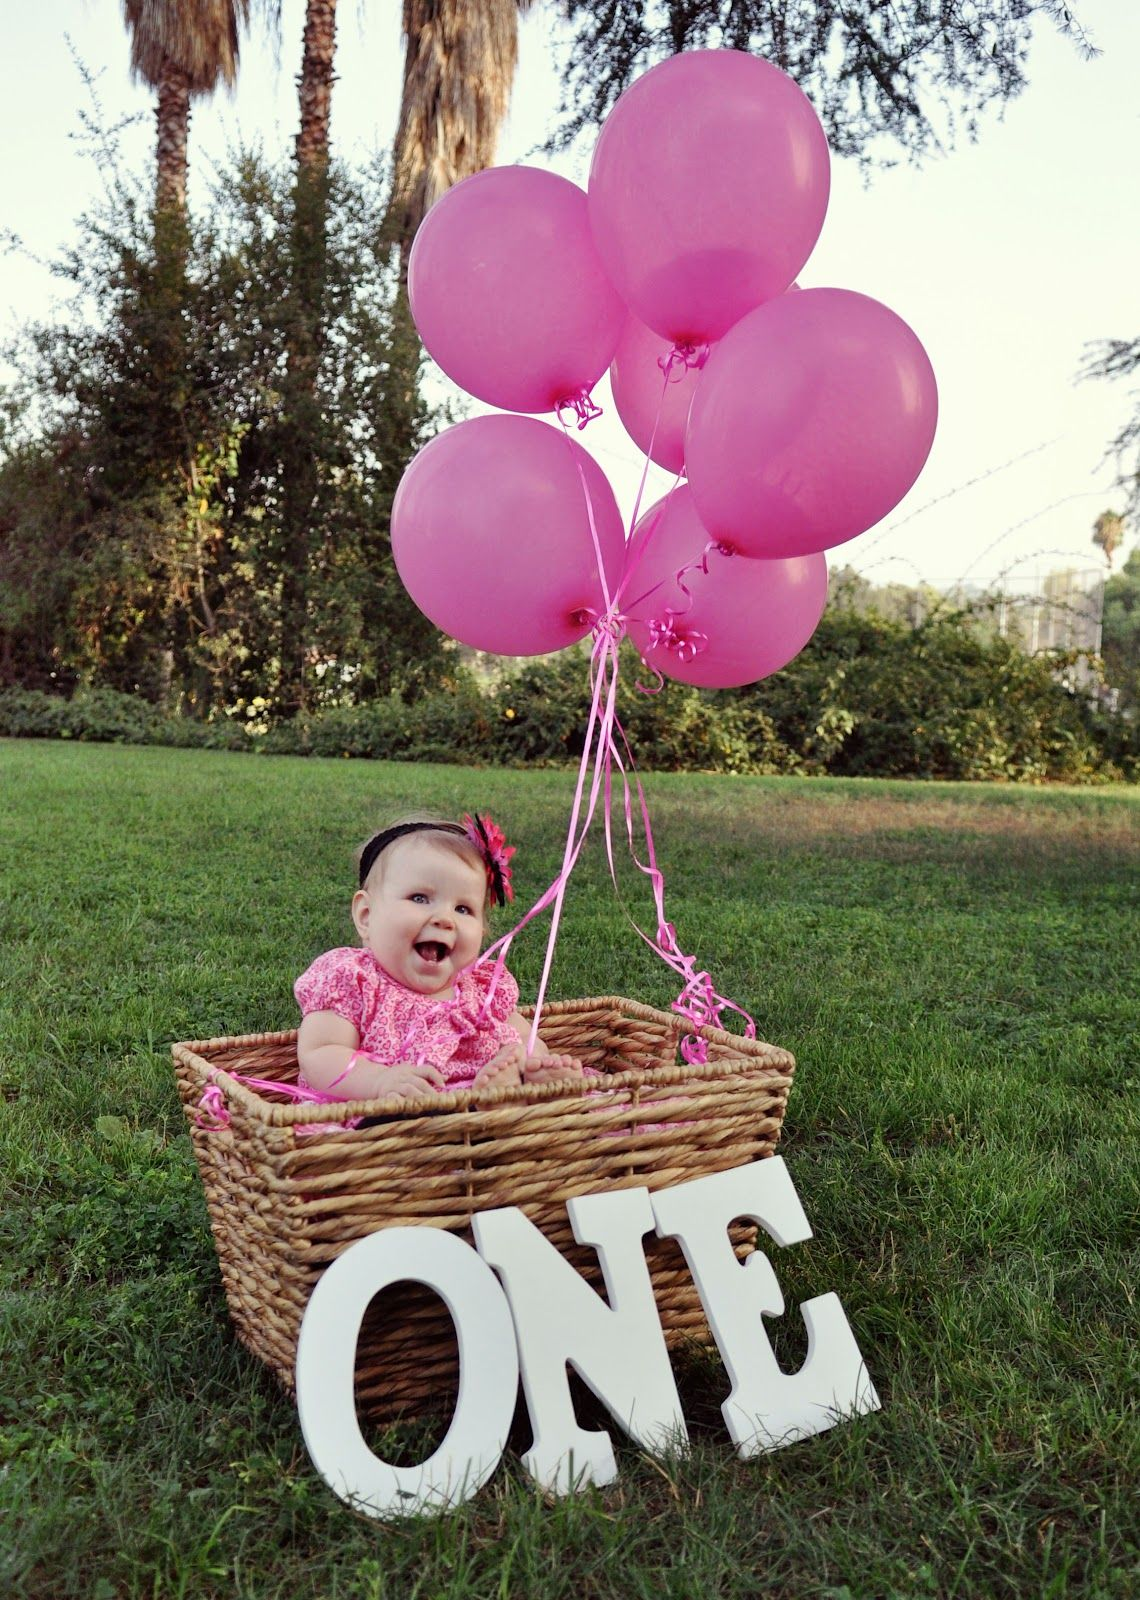 One Year Old Picture Ideas : picture, ideas, Glamorous, Life:, Family, Photo, Shoot, (With, Rowdy, Boys!), Thrifty, Thursday, Birthday, Pictures,, Photoshoot,, Photography